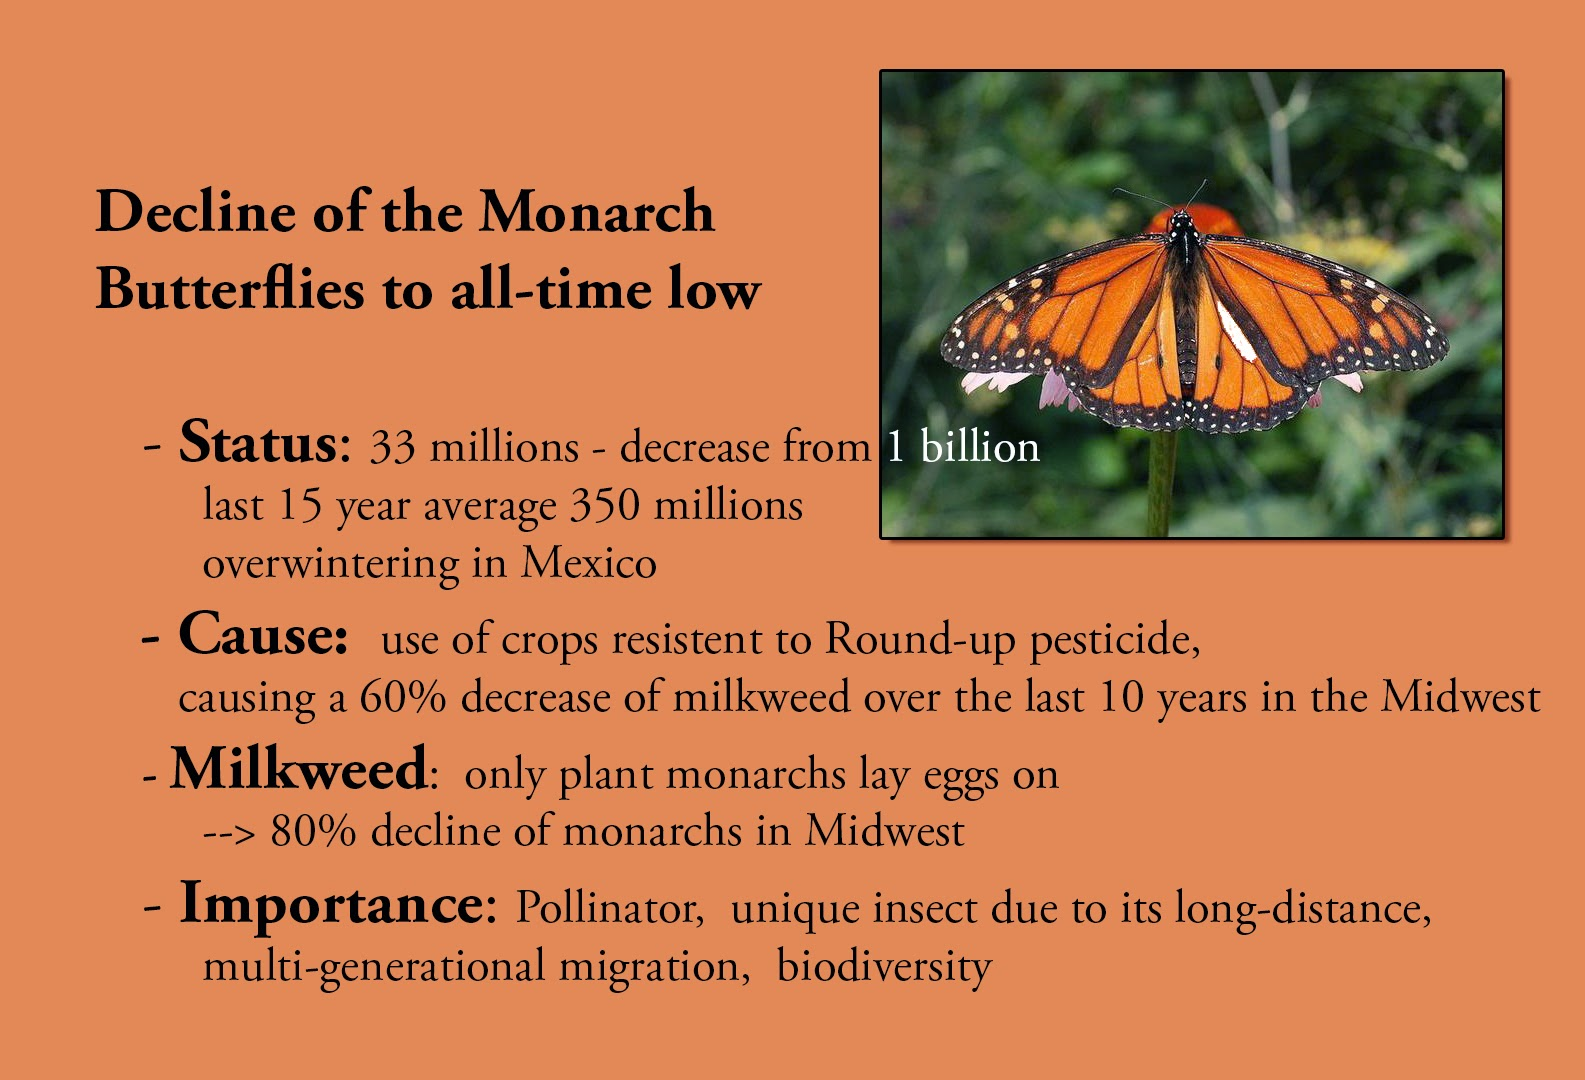 M. Raeder - Photography: Monarch Butterflies in Crisis